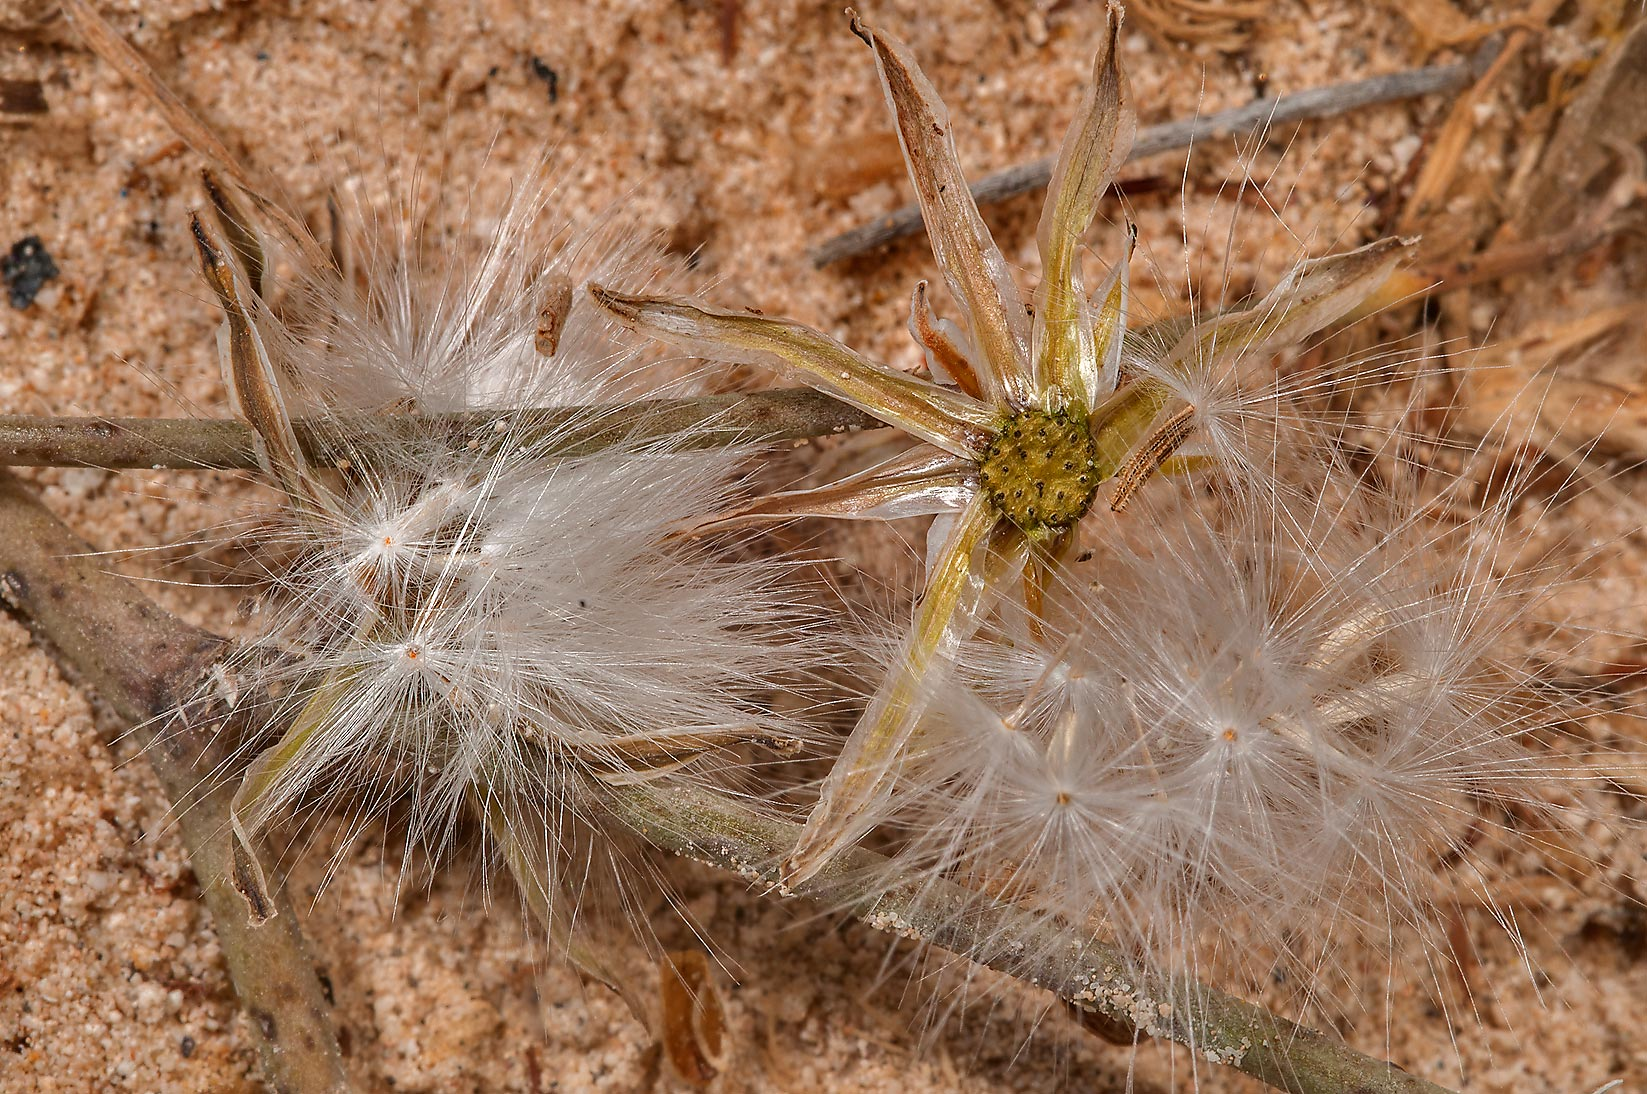 Fluffy seeds of a plant of aster family in desert...of Ras Laffan, north from Doha. Qatar